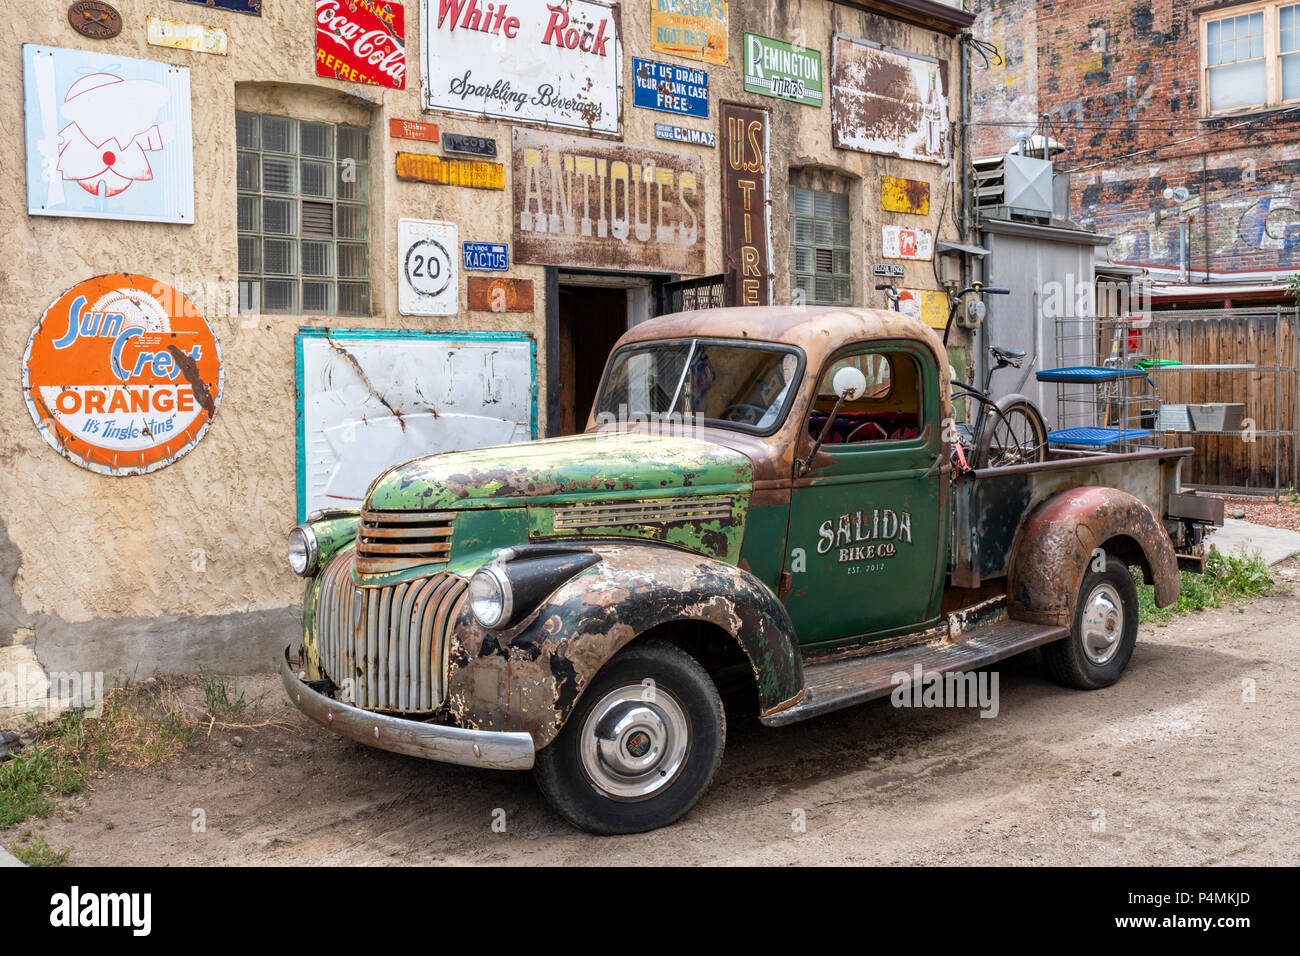 Old Rusty Chevrolet Truck Stock Photos 1942 Chevy Coe Antique Pick Up Salida Colorado Usa Image